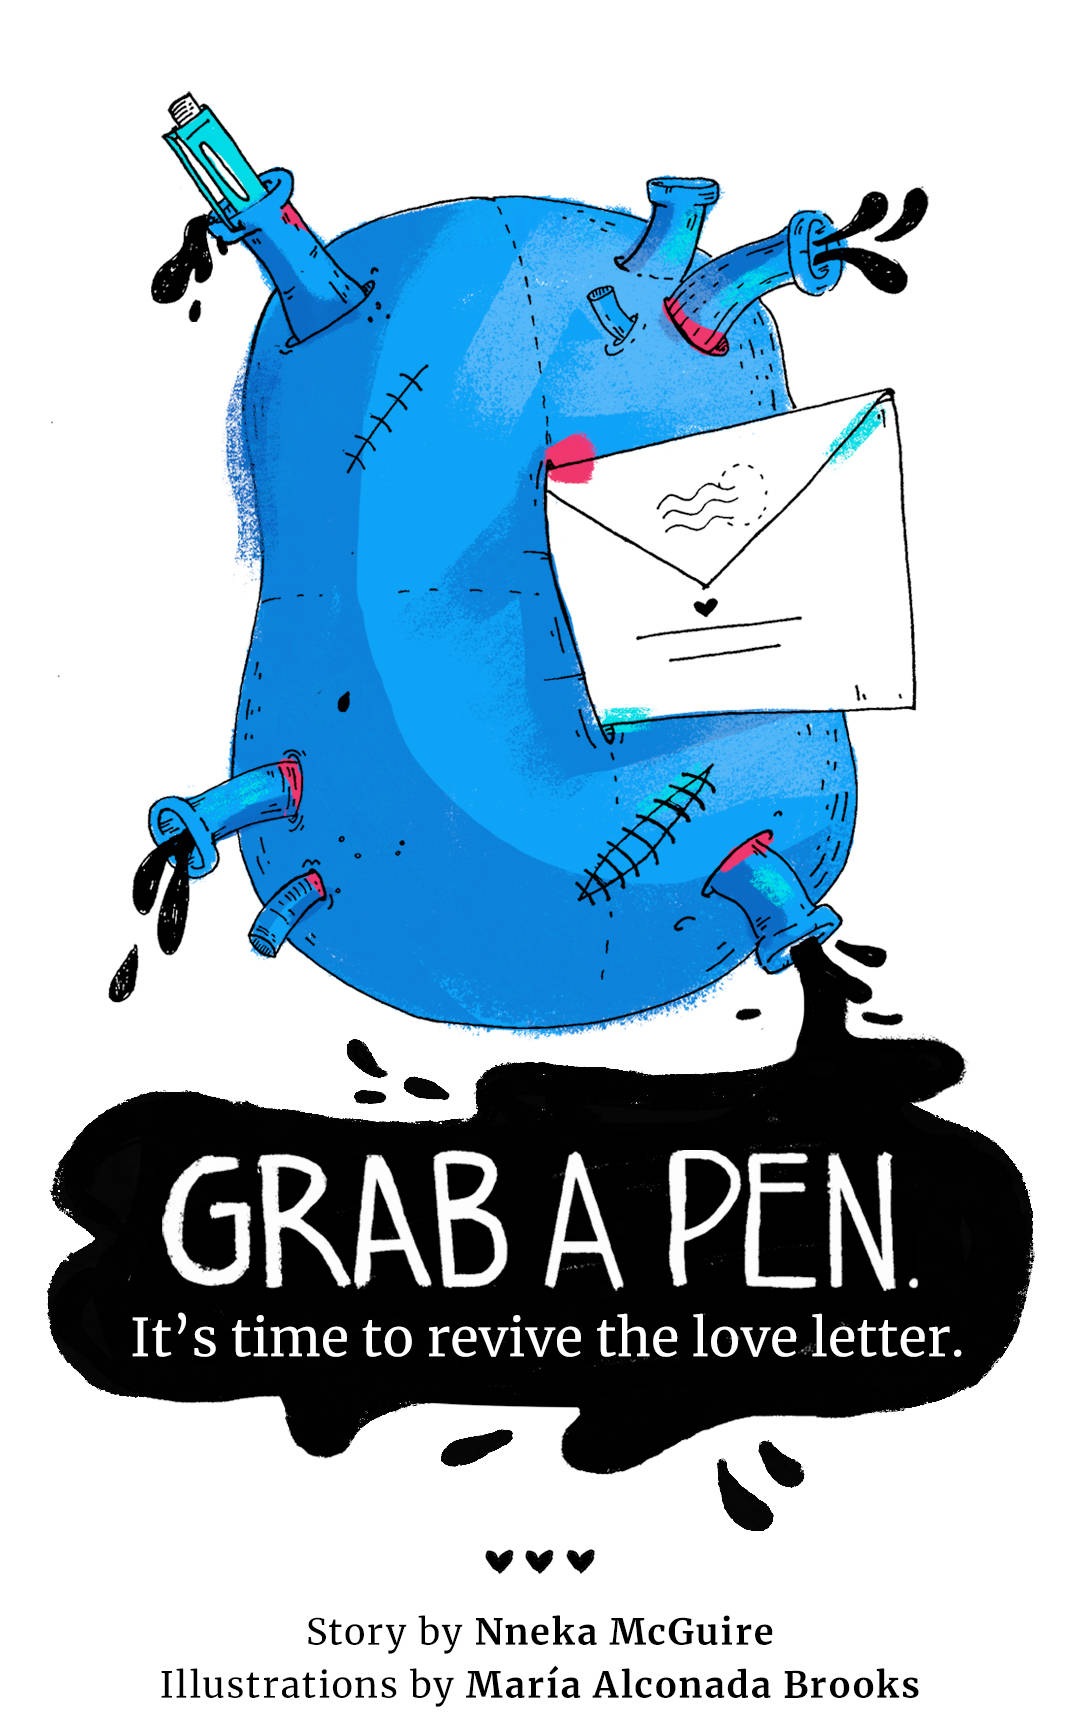 How to write a love letter the right way